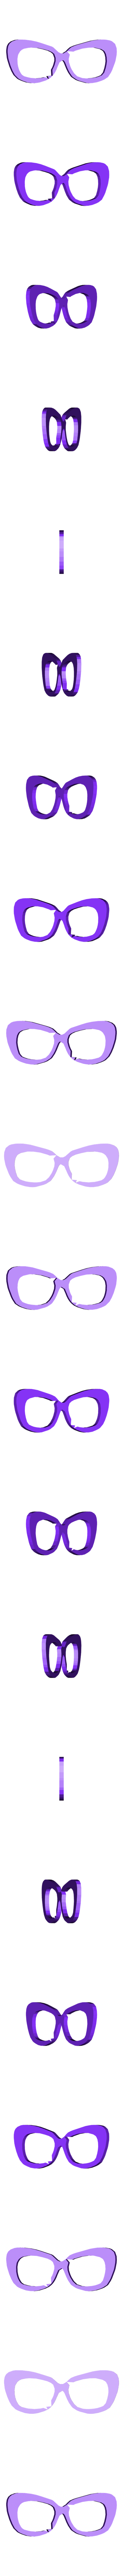 glasses_big.stl Download free STL file cute random elements for scrap-booking and other crafts • 3D printing object, TomasLA